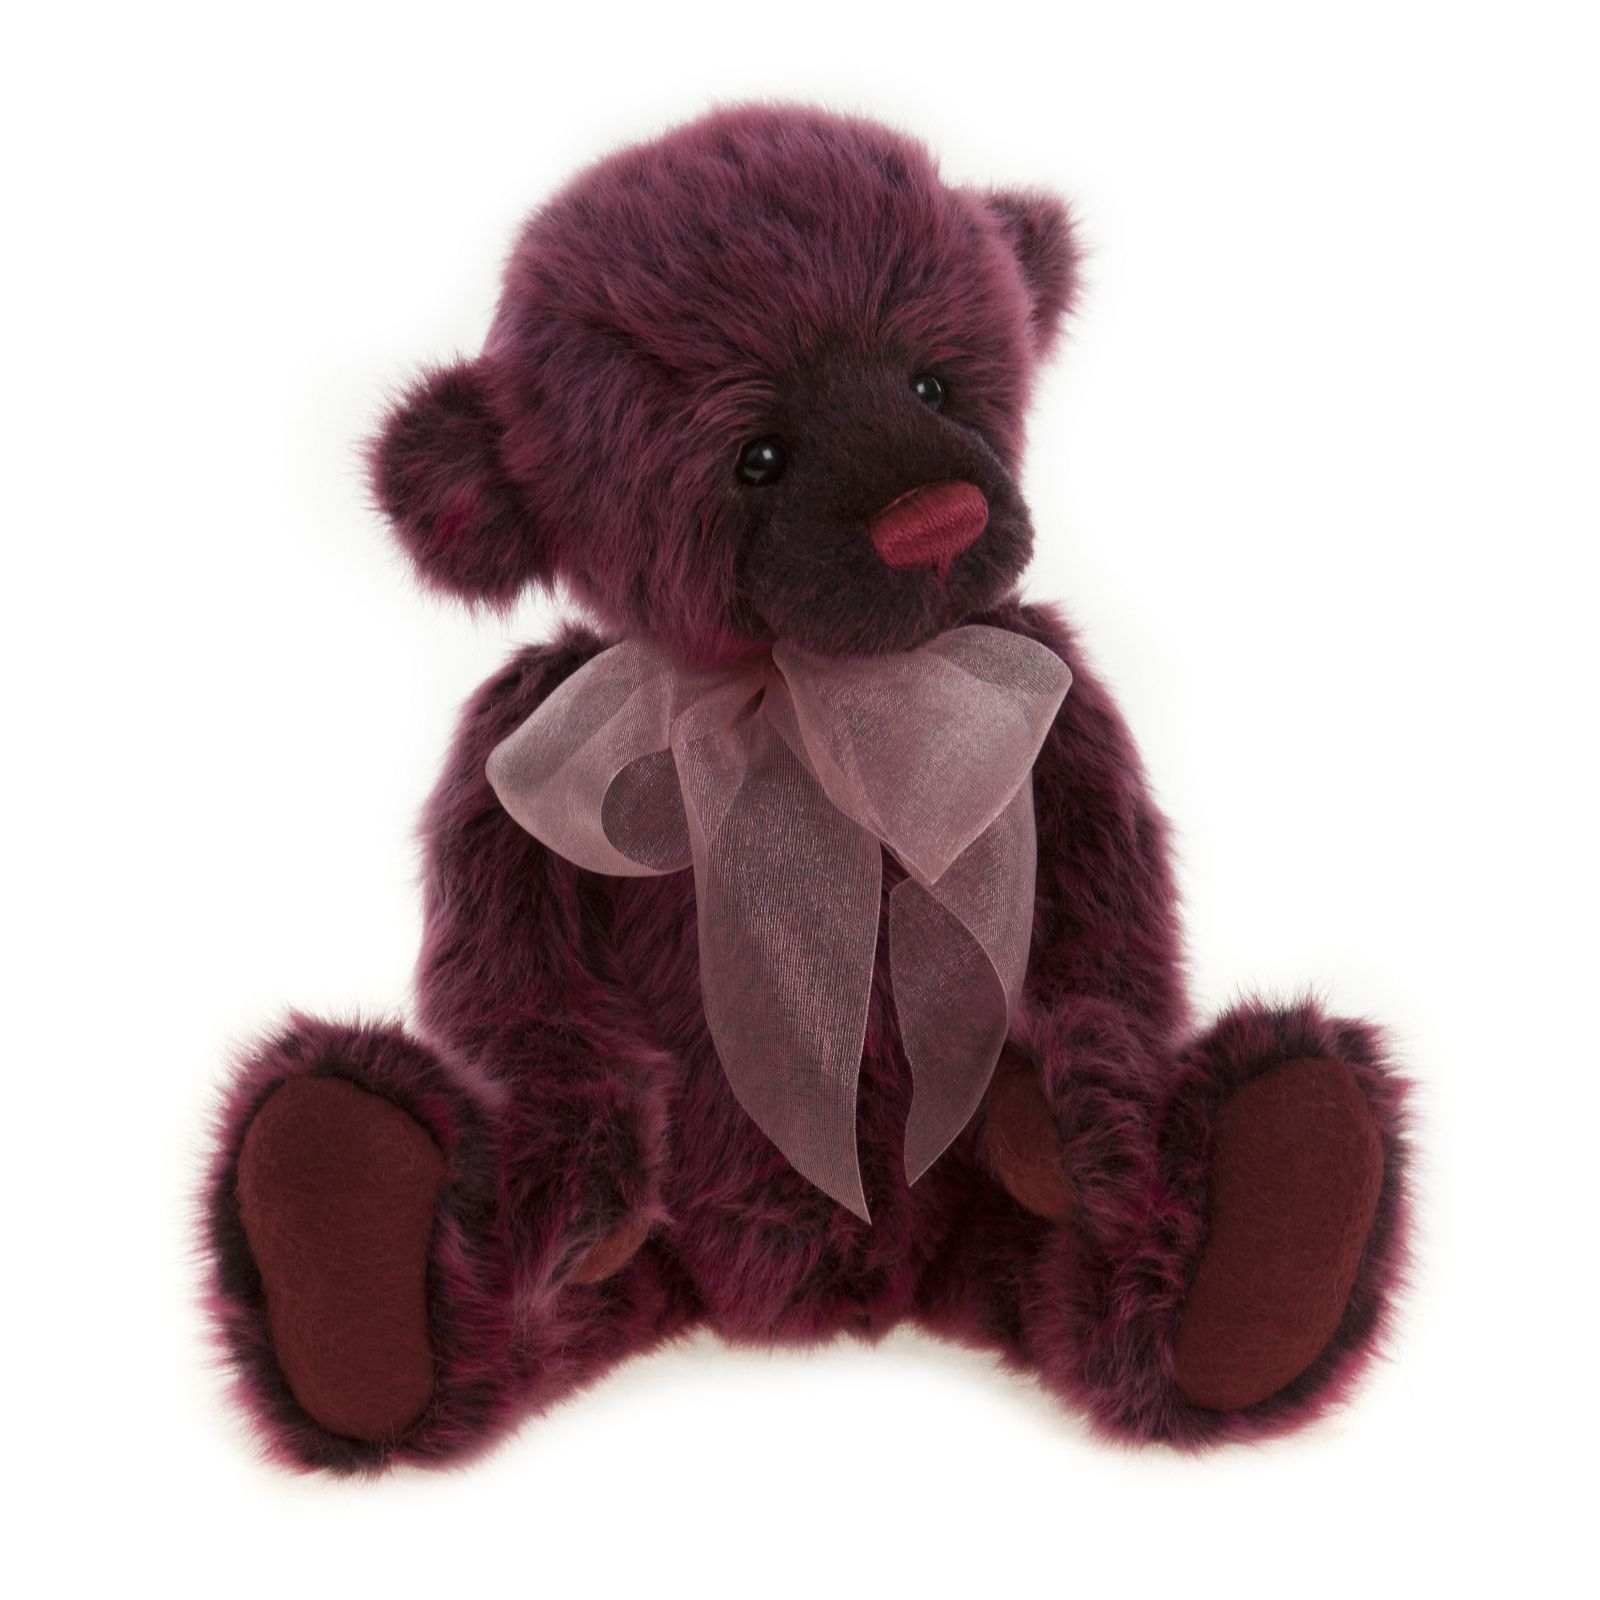 "Charlie Bears Collectable Chelsea 13"" Plush Bear - 704550"